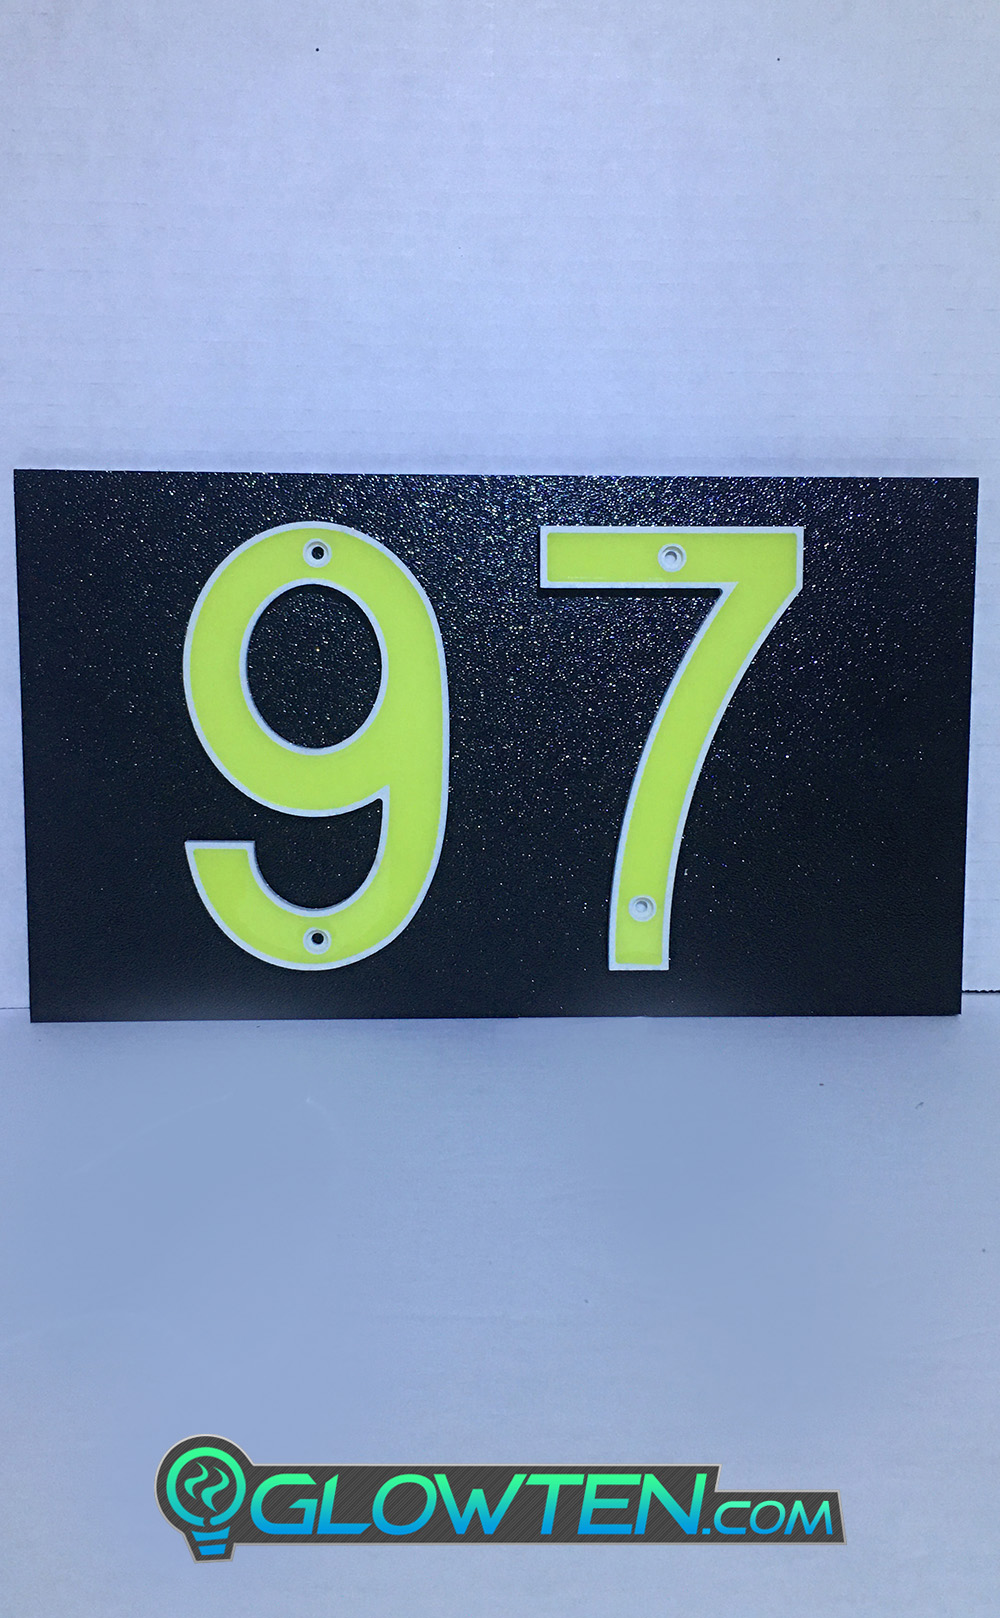 GLOWTEN.com - ABS Plastic Photoluminescent Pigment TWO 2 NUMBERS with BLACK PLAQUE BACKING Glow In Dark House Address Number Horizontal Eco Friendly Photoluminescent Sign ABS Material Price For Whole Set With Backing Fully customizable please pick and choose your Numbers picture photo cap preview pic image search 1